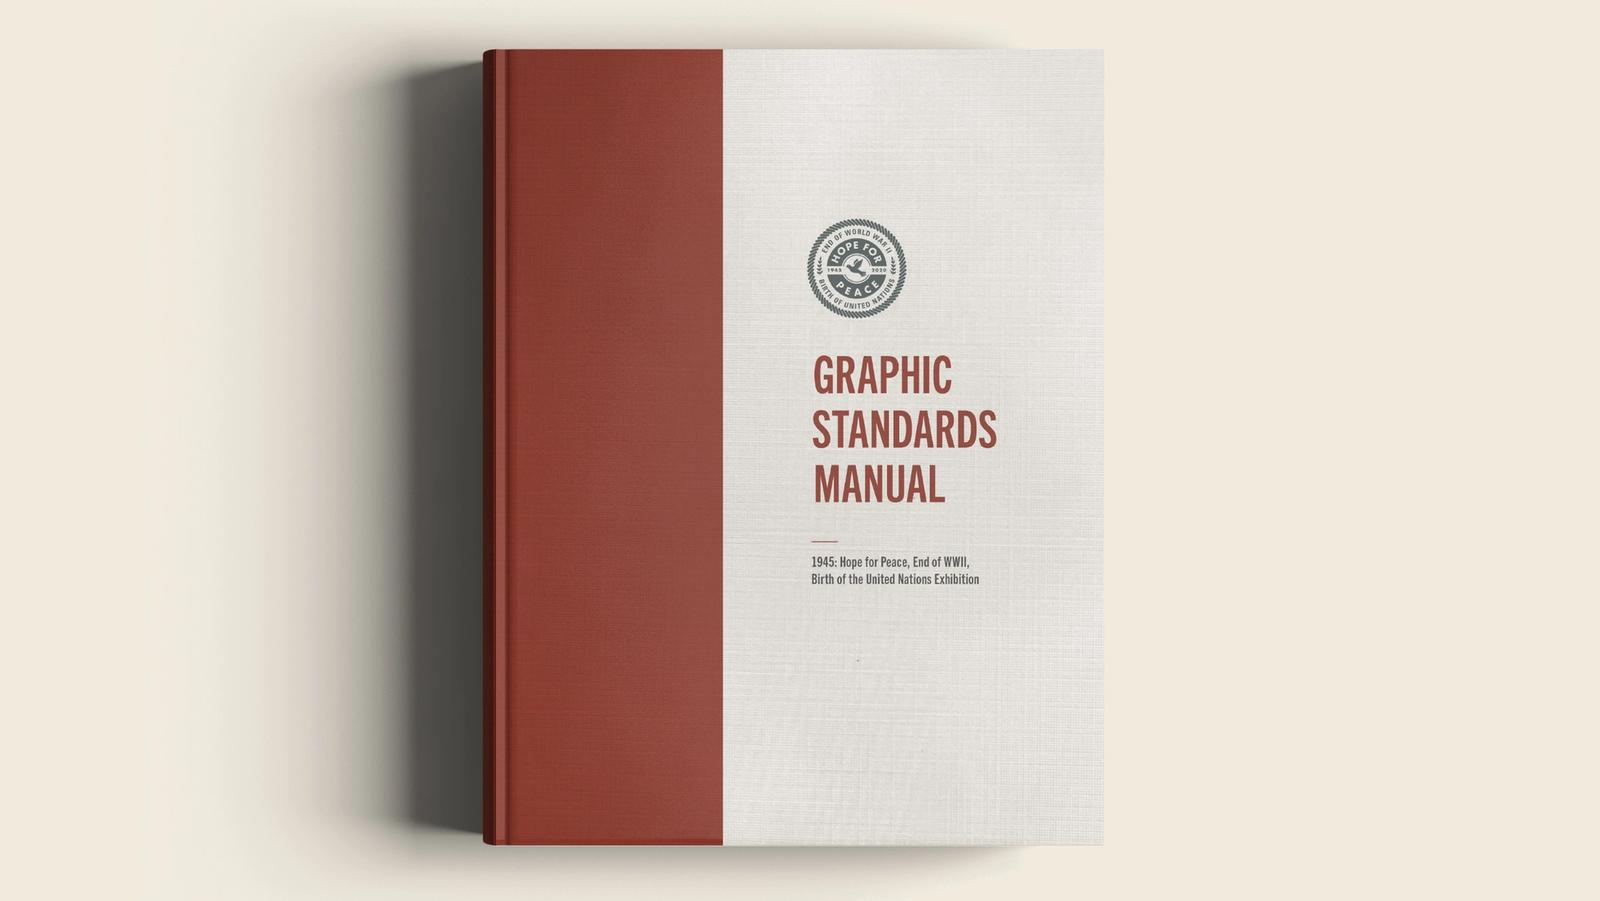 Hope for Peace // Graphic Standards Manual